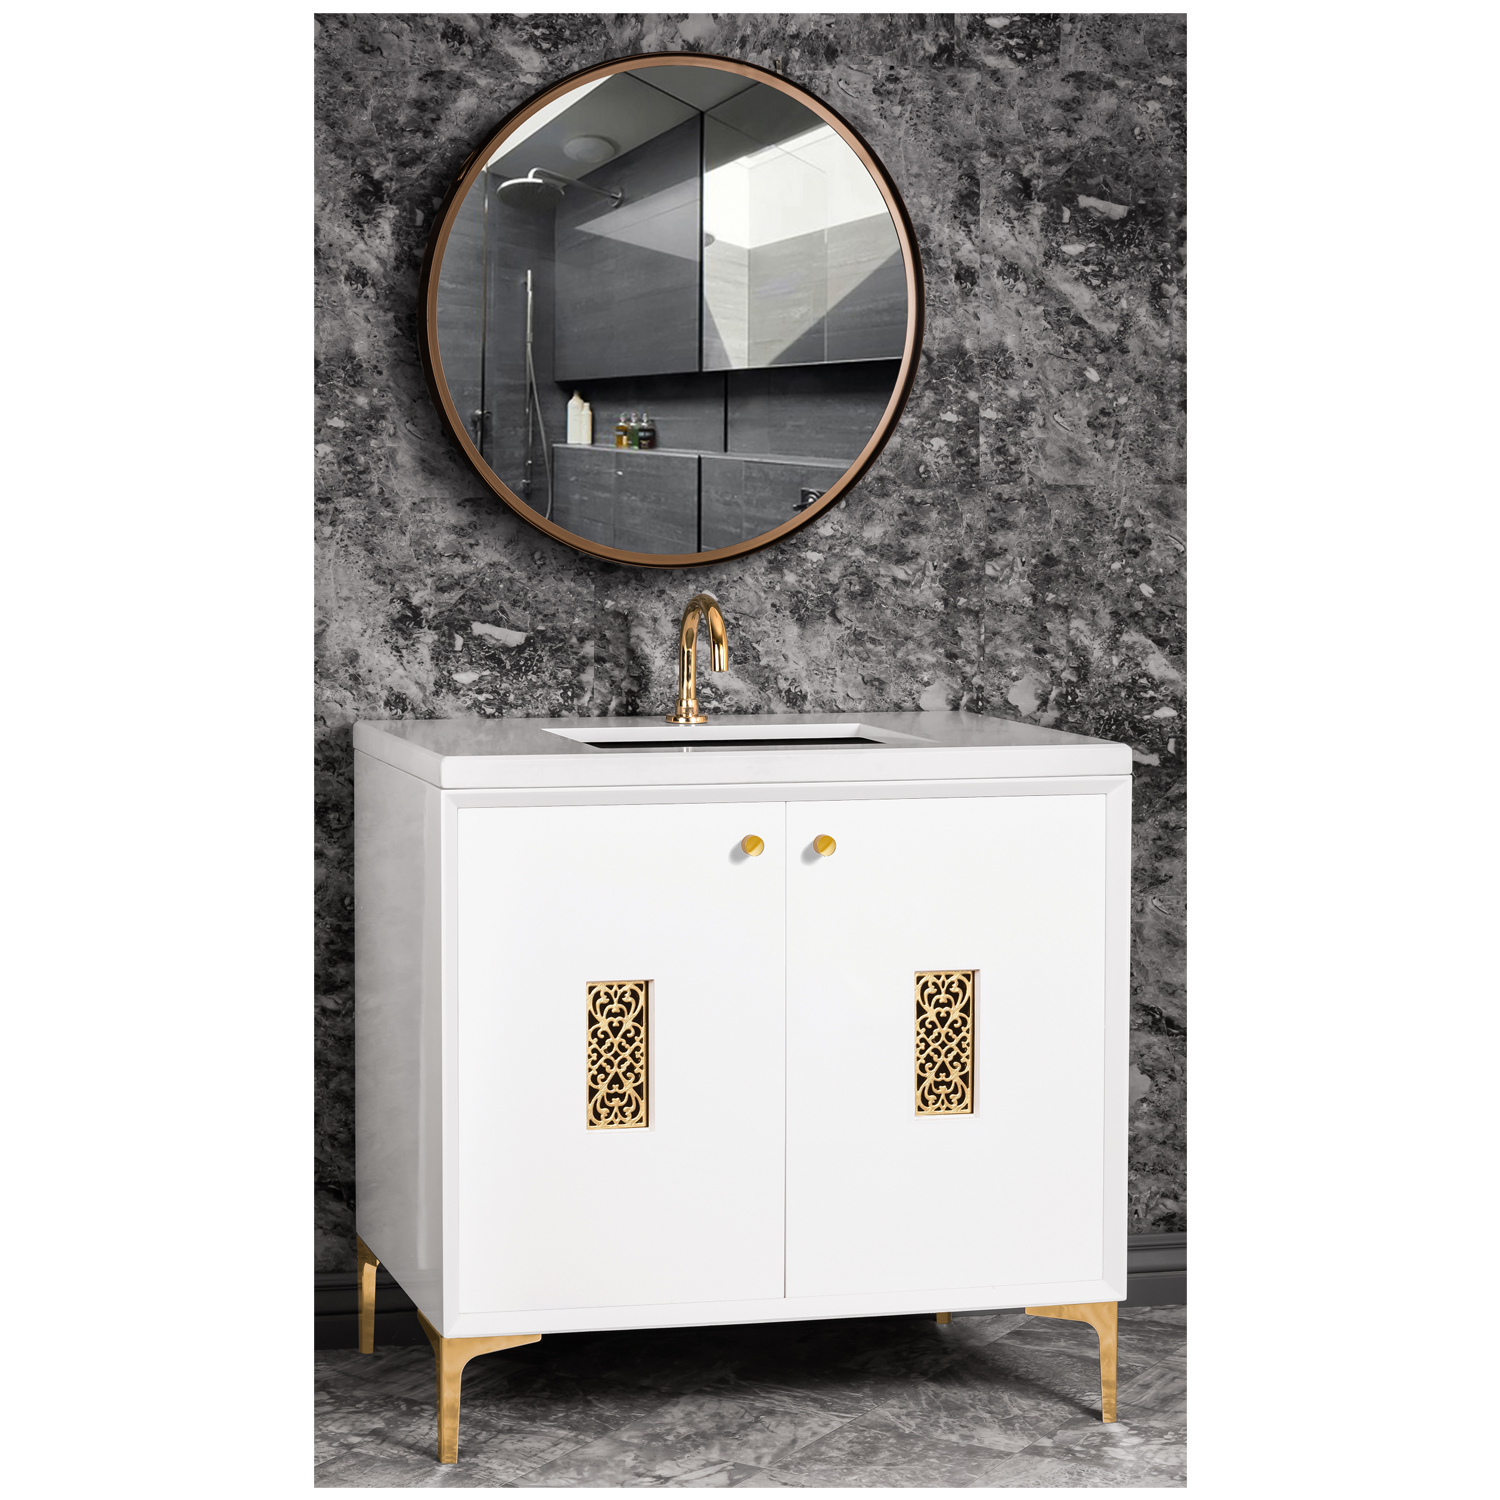 """VAN36W-012   36"""" White Frame with Filigree - Shown with PB (Polished Brass)"""